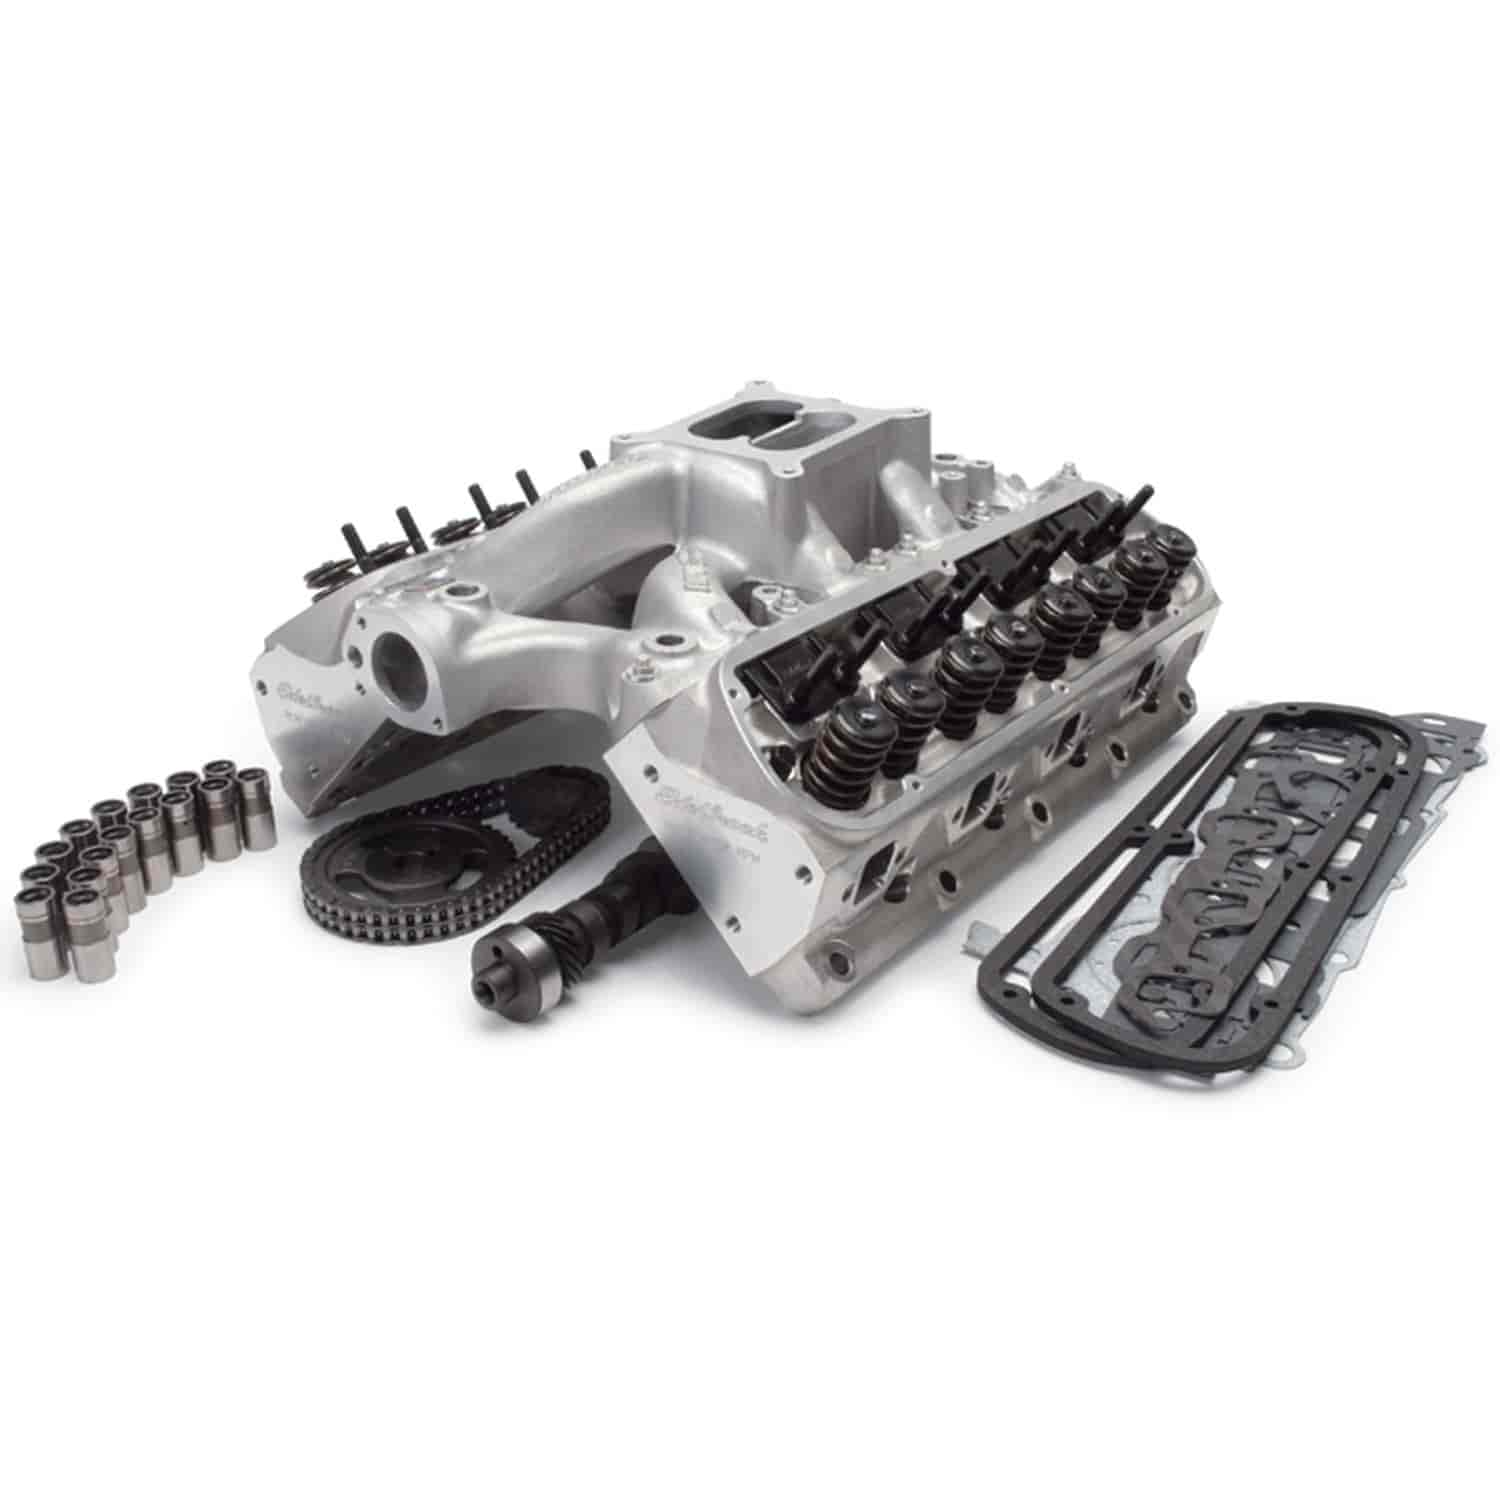 Edelbrock 2091 - Edelbrock Power Package Top End Kits